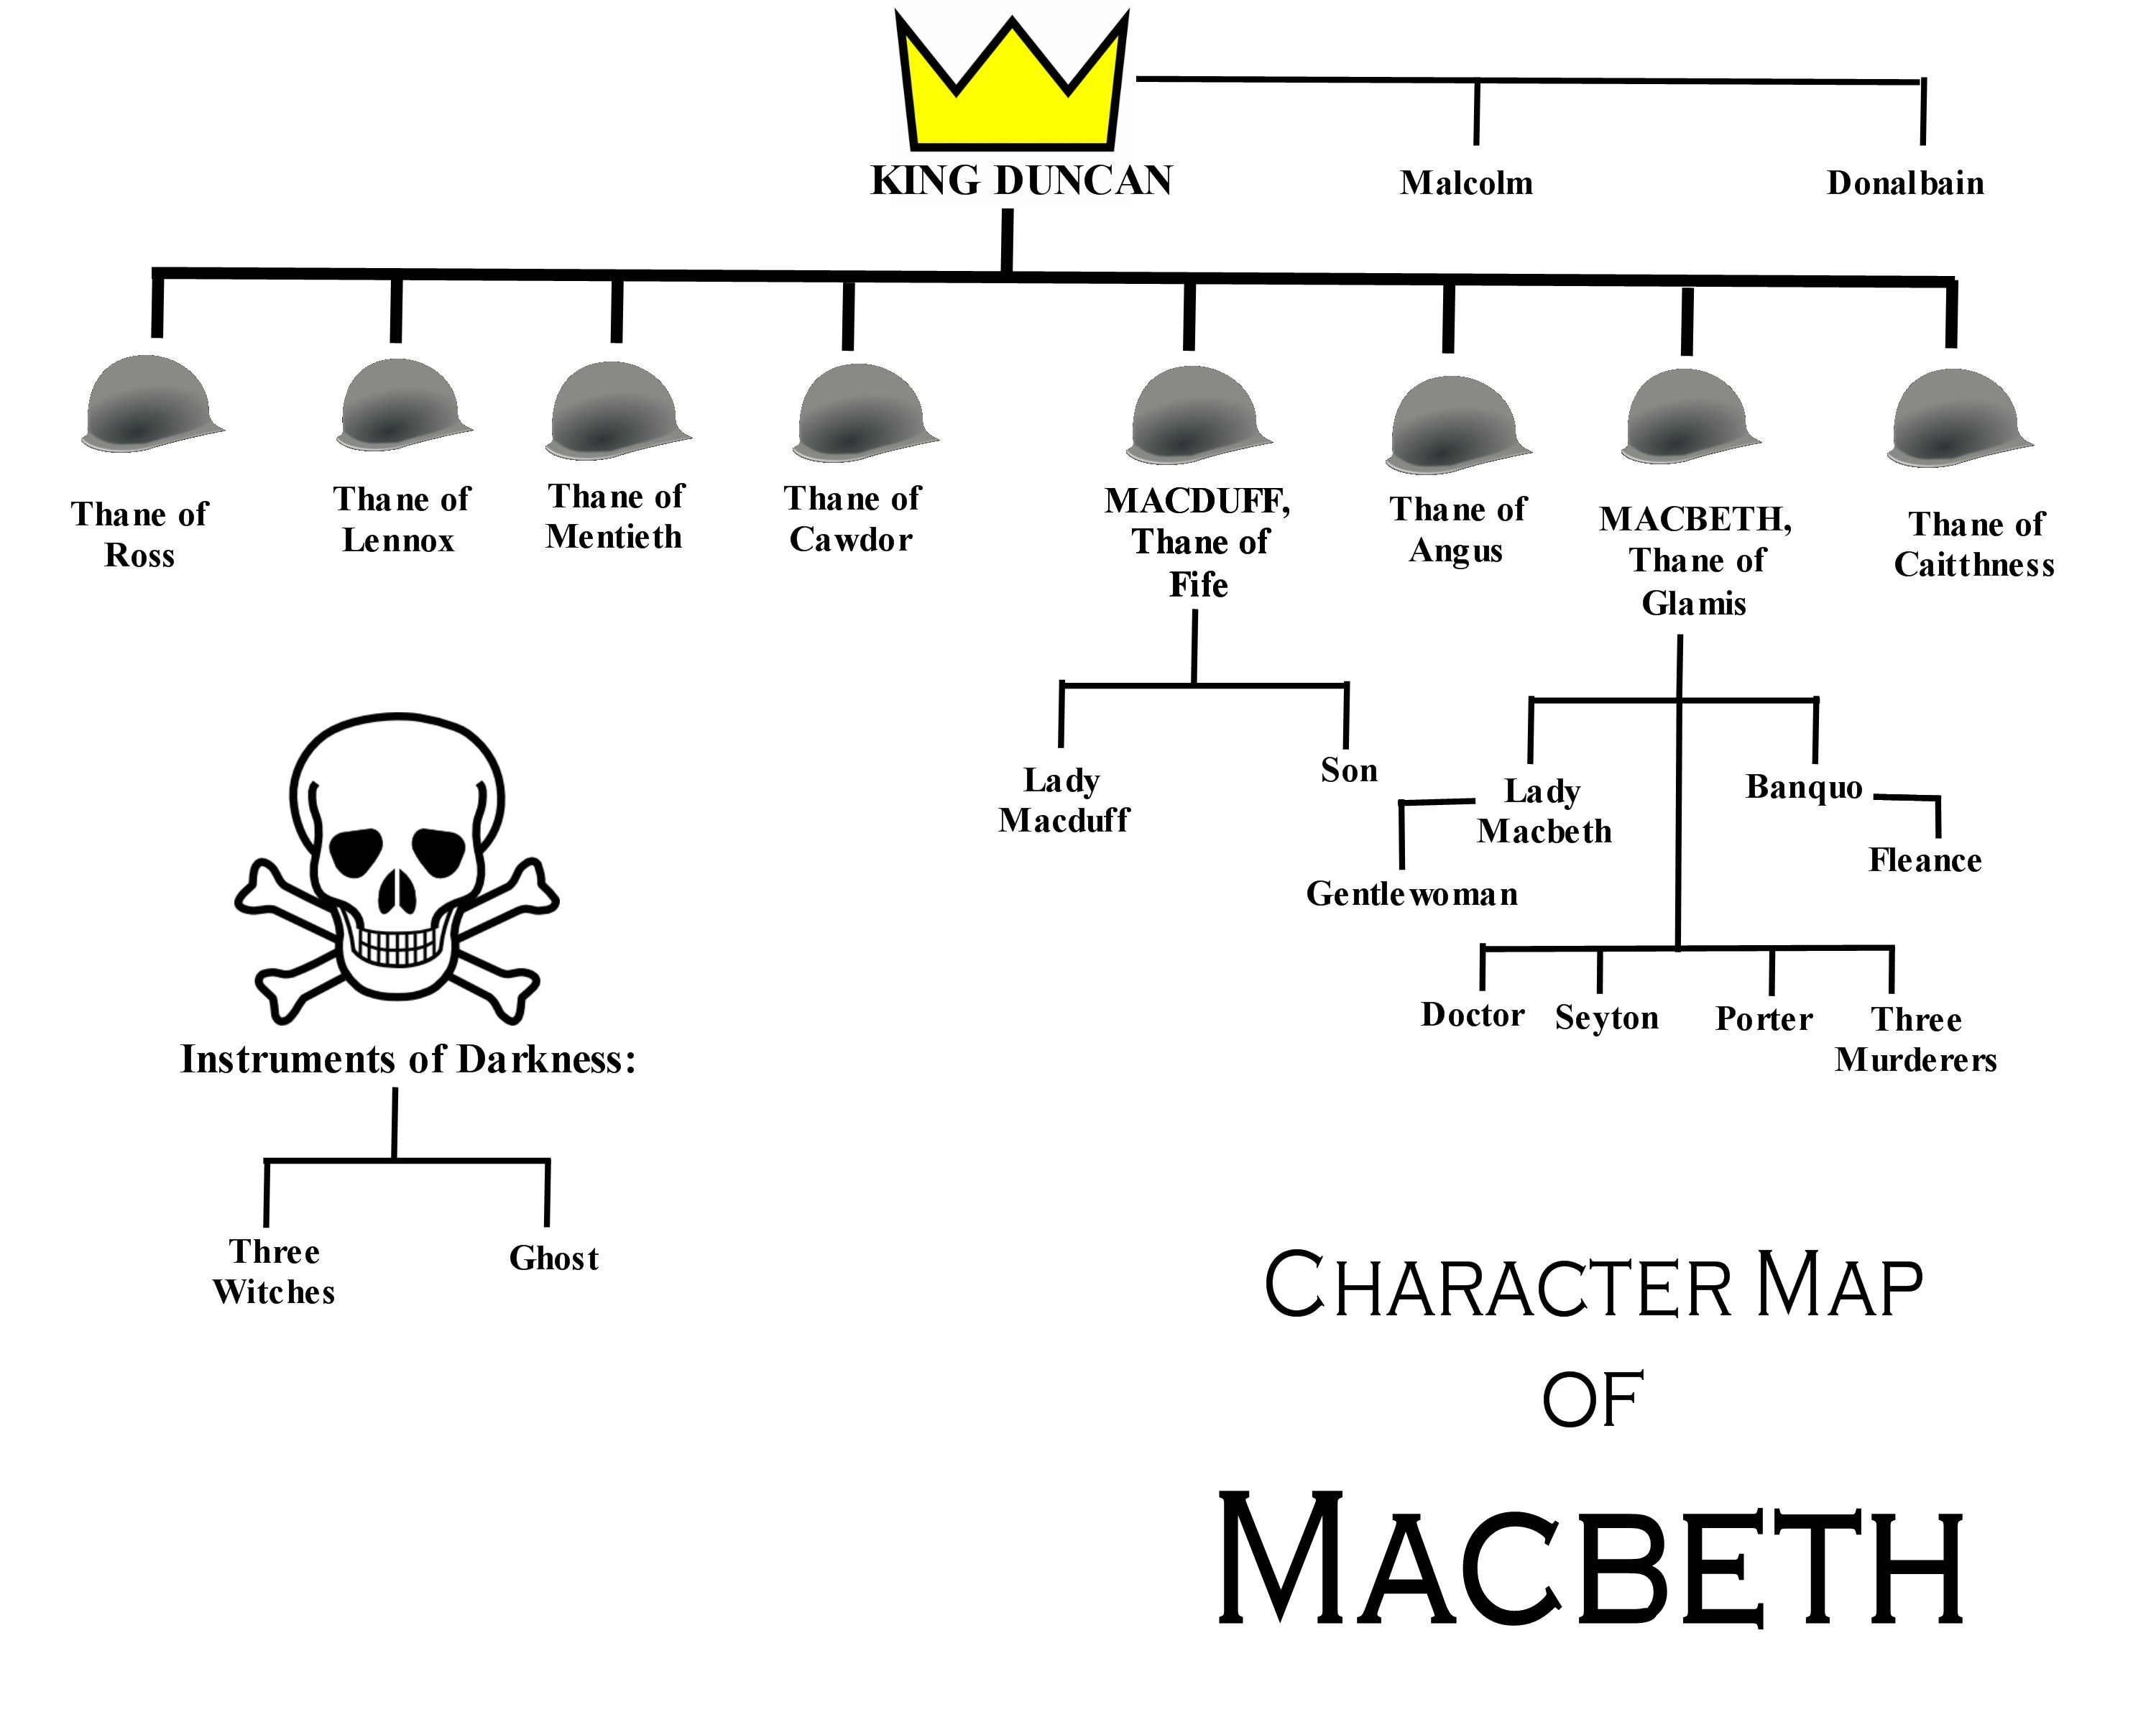 Family Tree Sketches Of The Characters In Macbeth